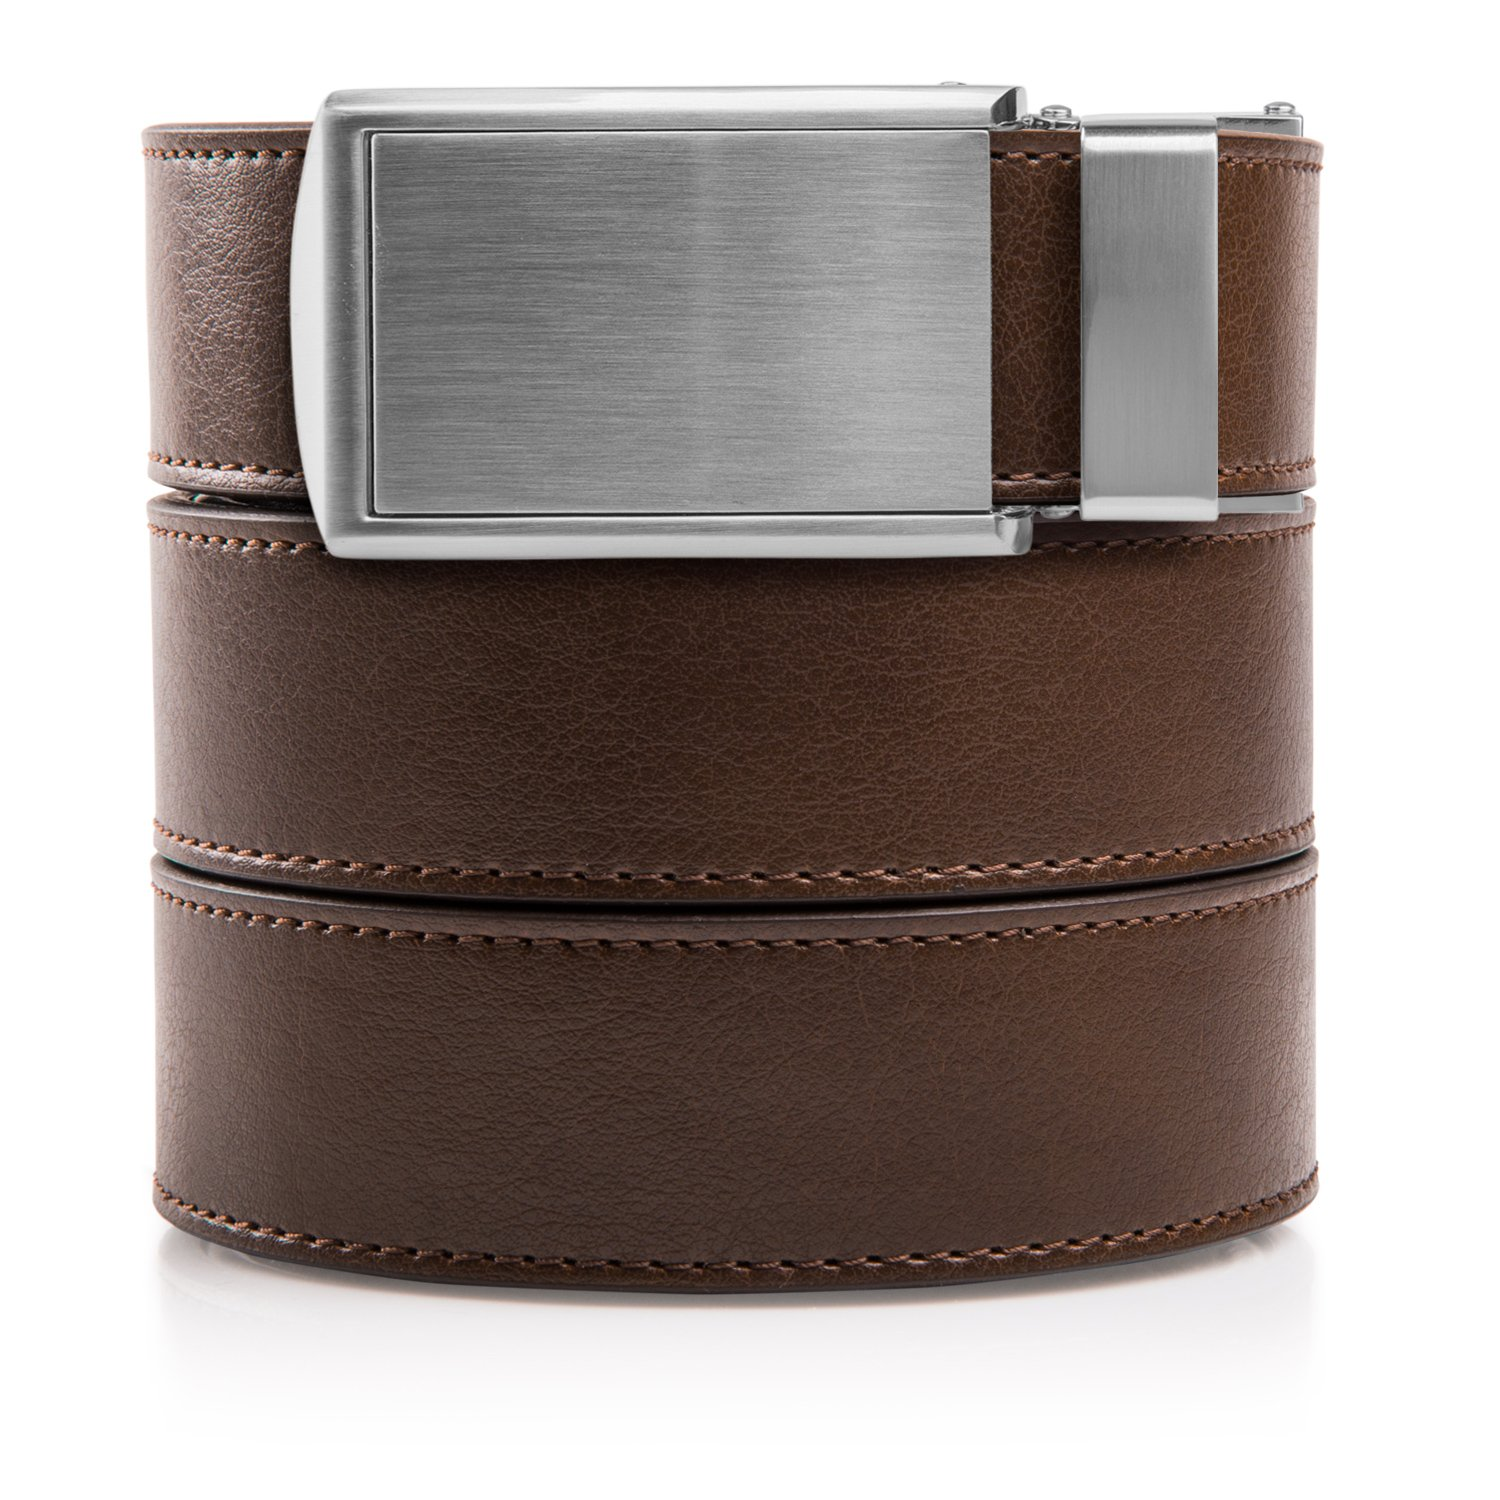 SlideBelts Men's Vegan Leather Belt without Holes - Silver Buckle/Mocha Brown Leather (Trim-to-fit: Up to 48'' Waist)…